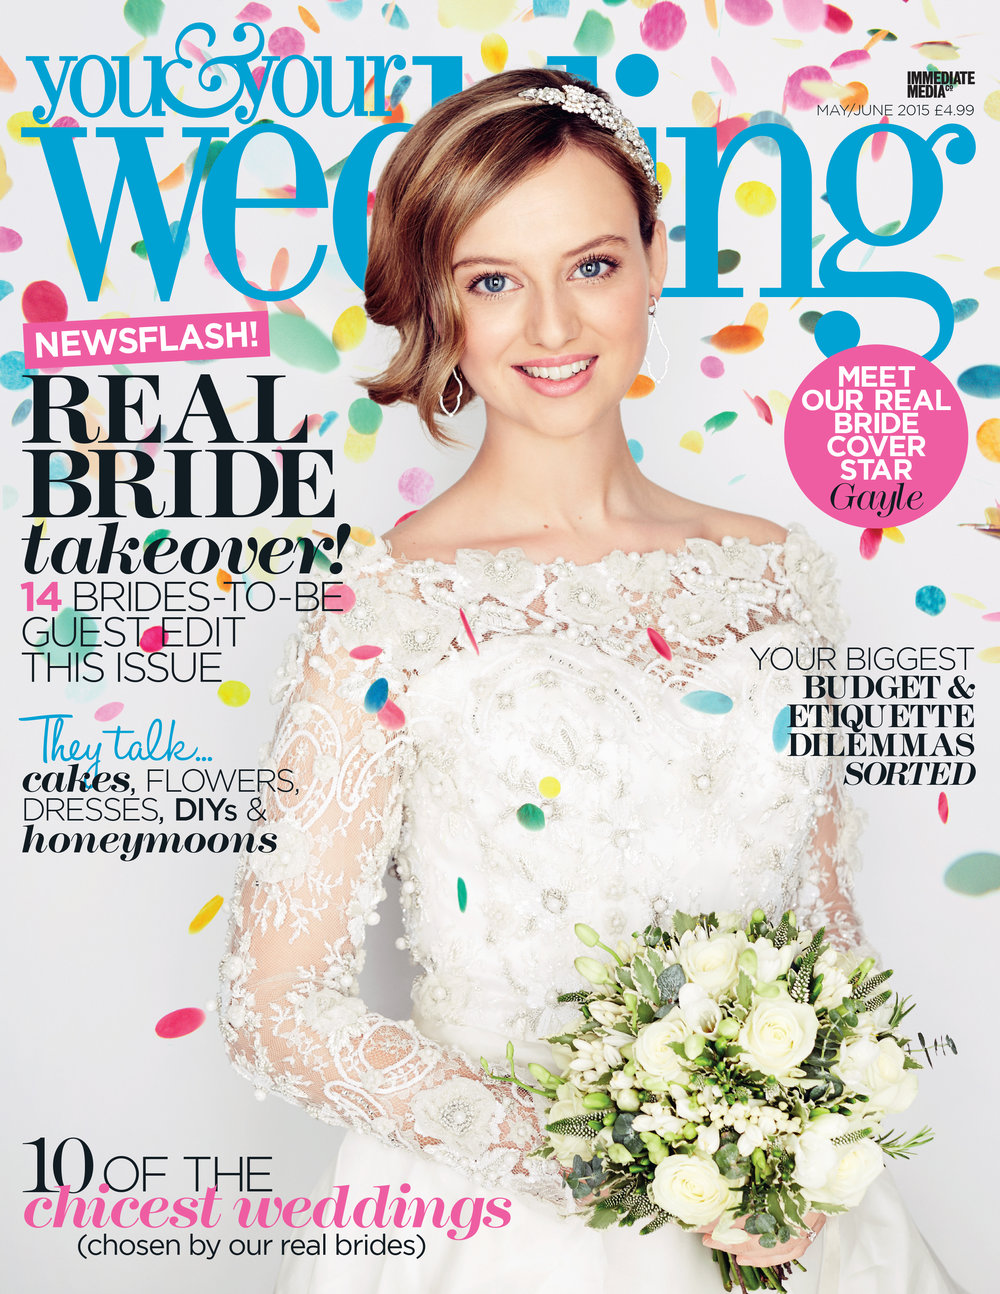 You & Your Wedding Magazine - May/Jun 2015